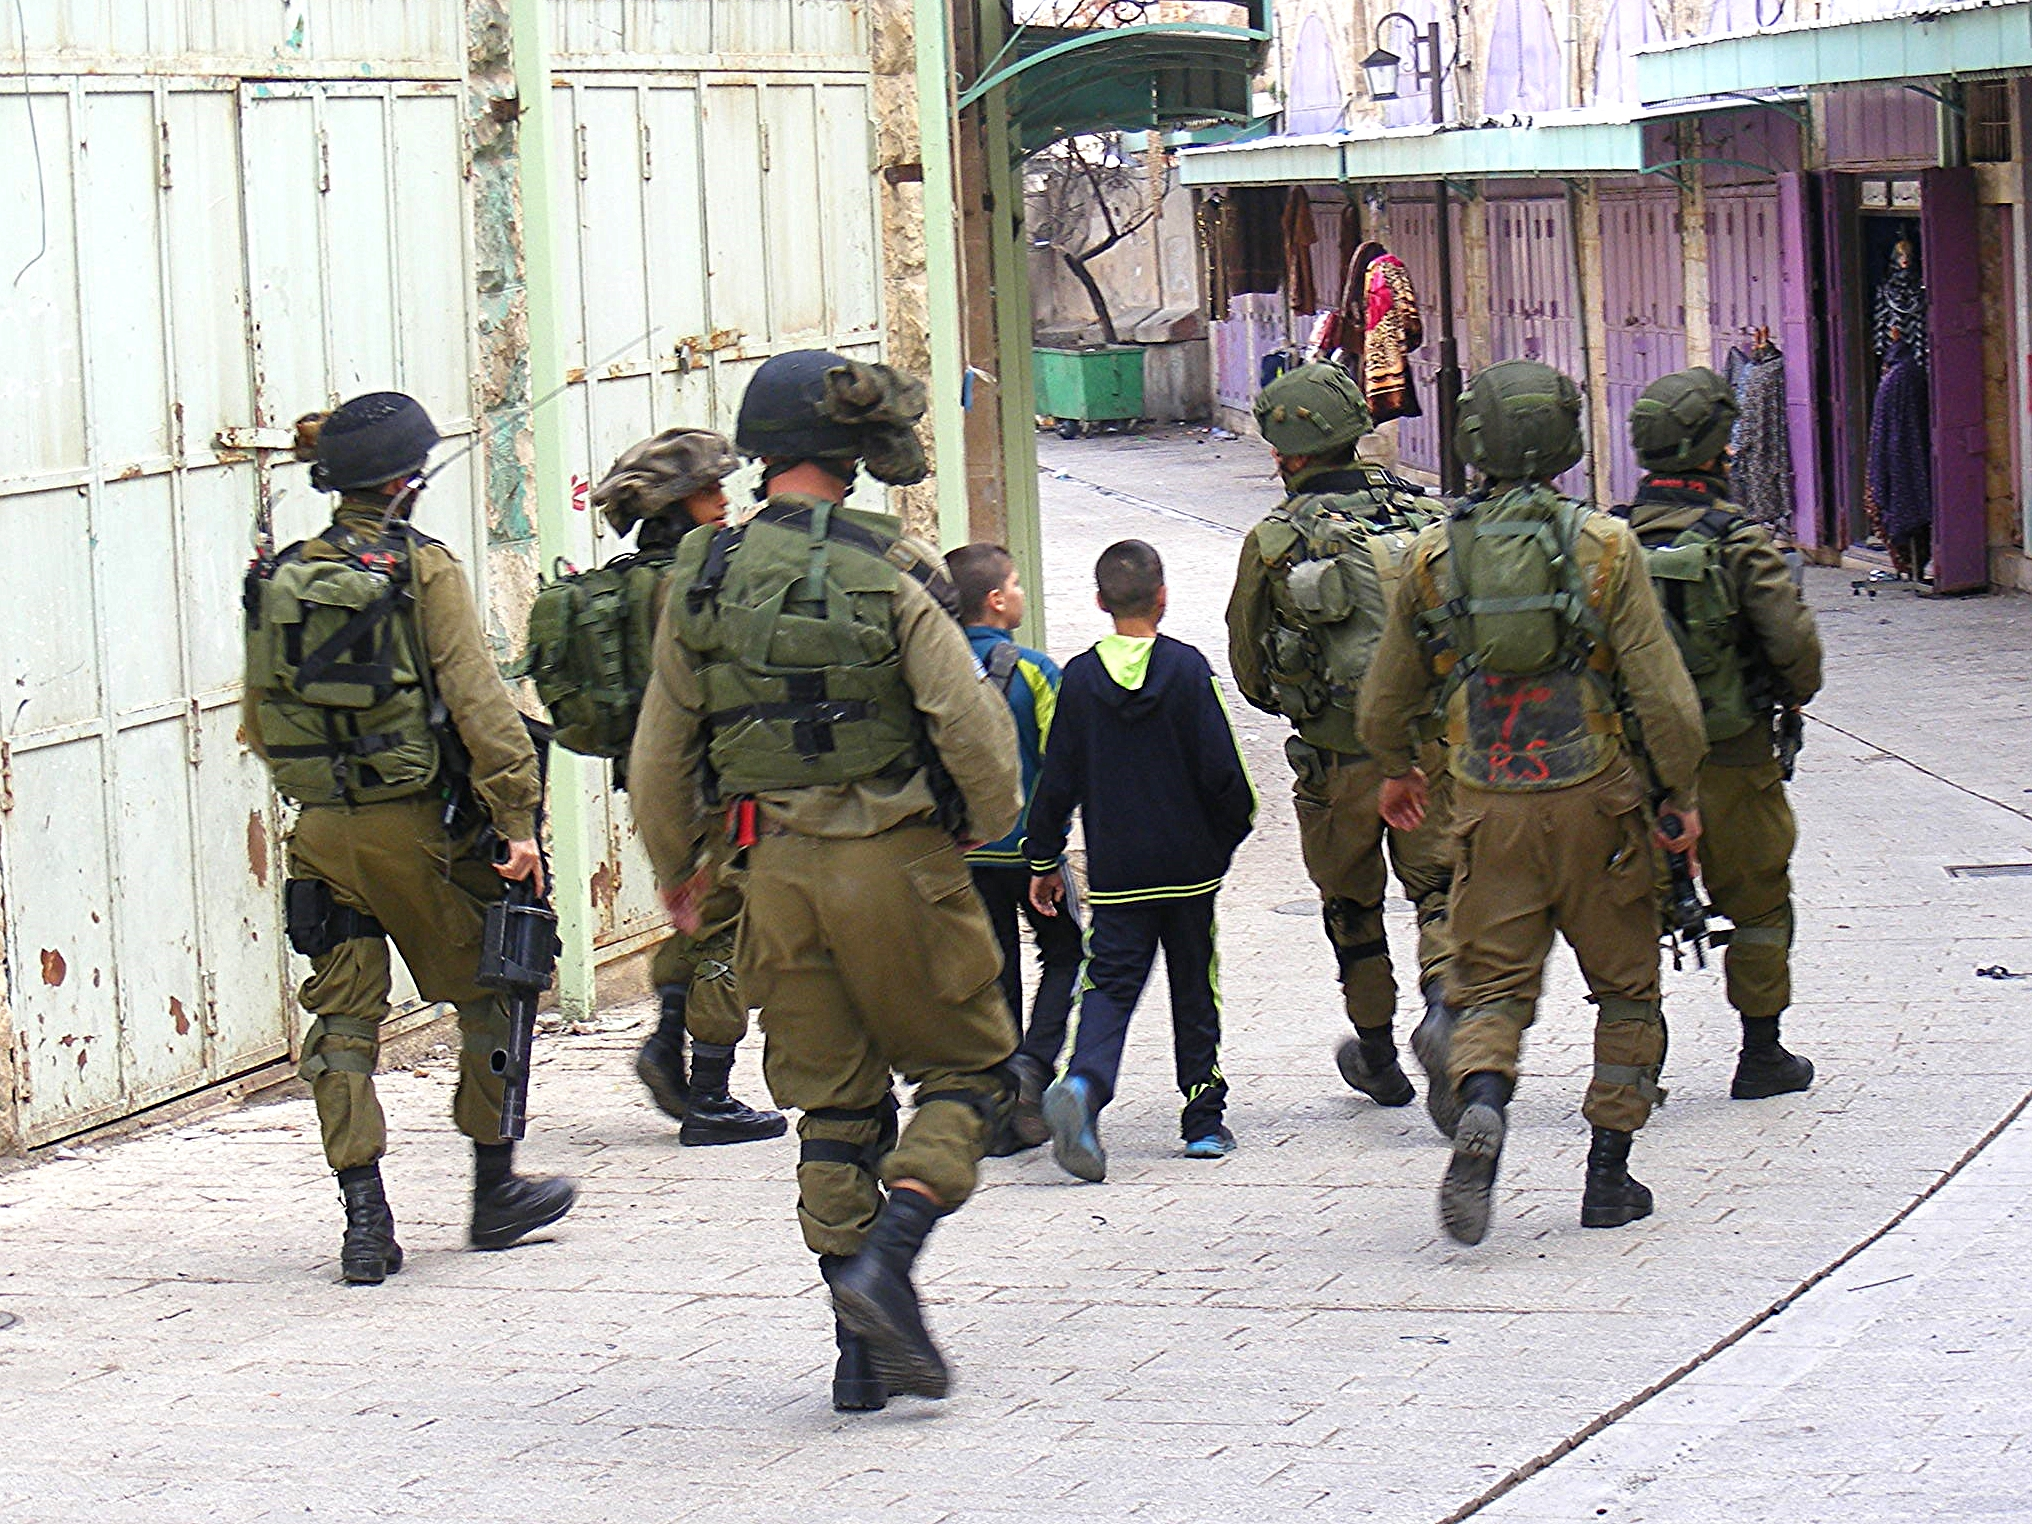 A 10- and 11-year-ols are arrested for allegedly throwing stones. Under Israeli Military law, no one under 12-years-old may be arrested.